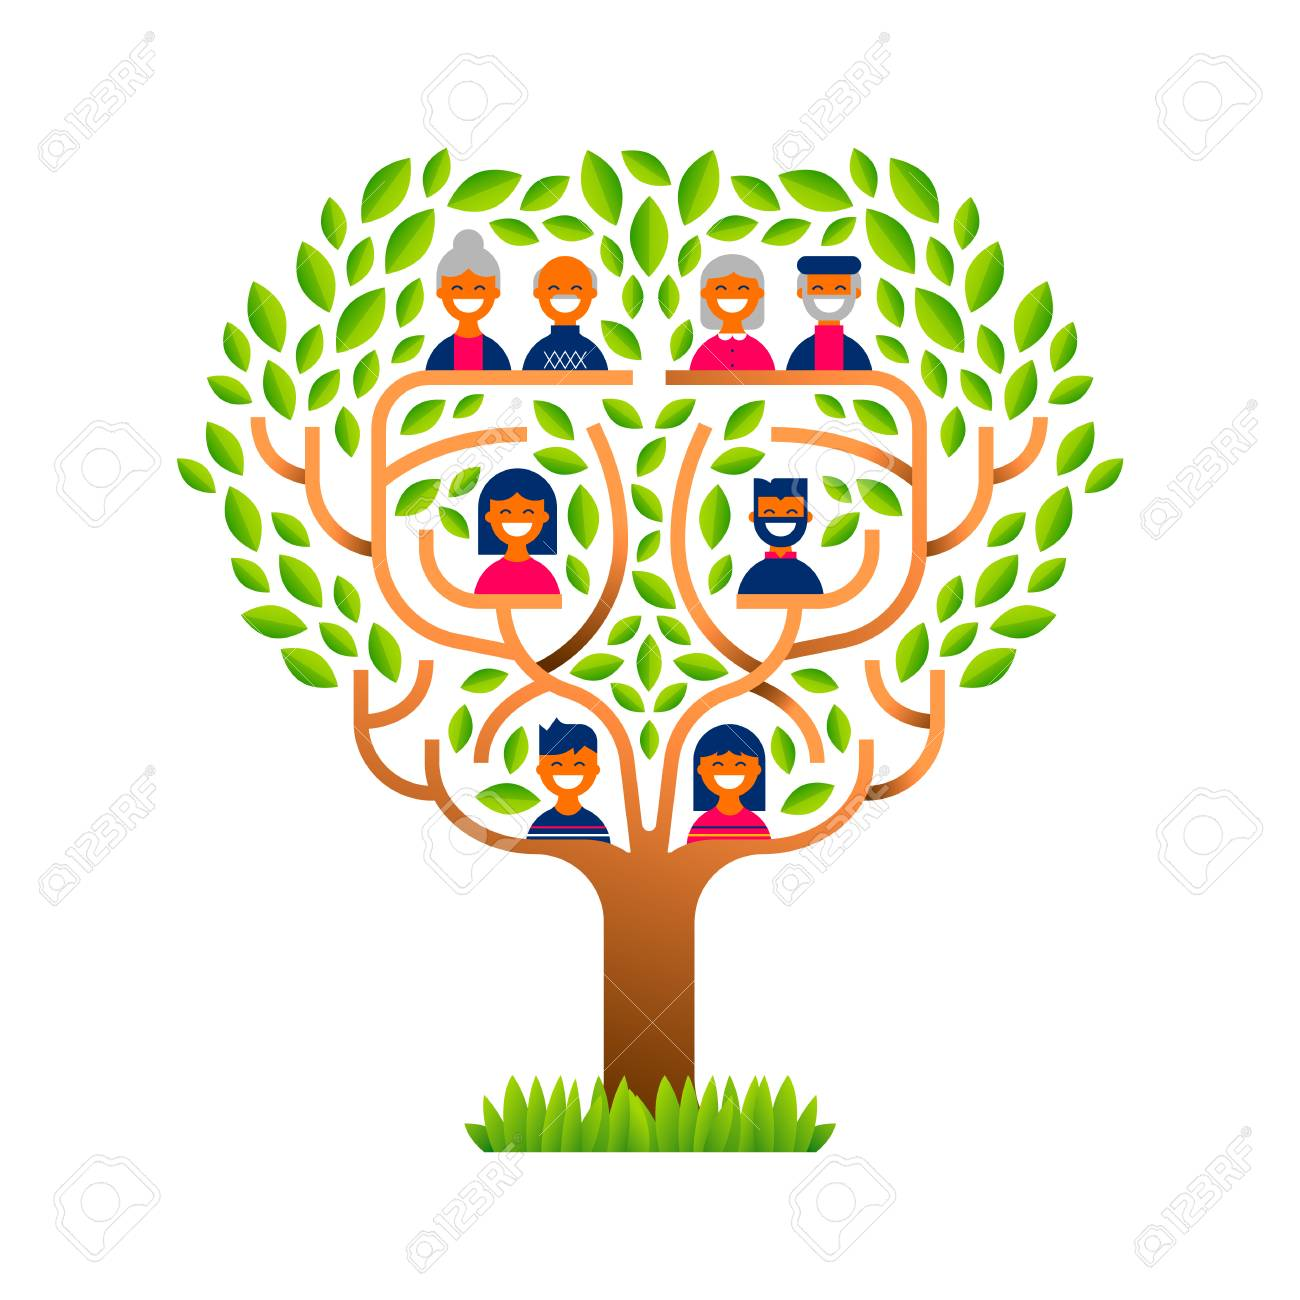 Big family tree template concept with people icons for life generations...